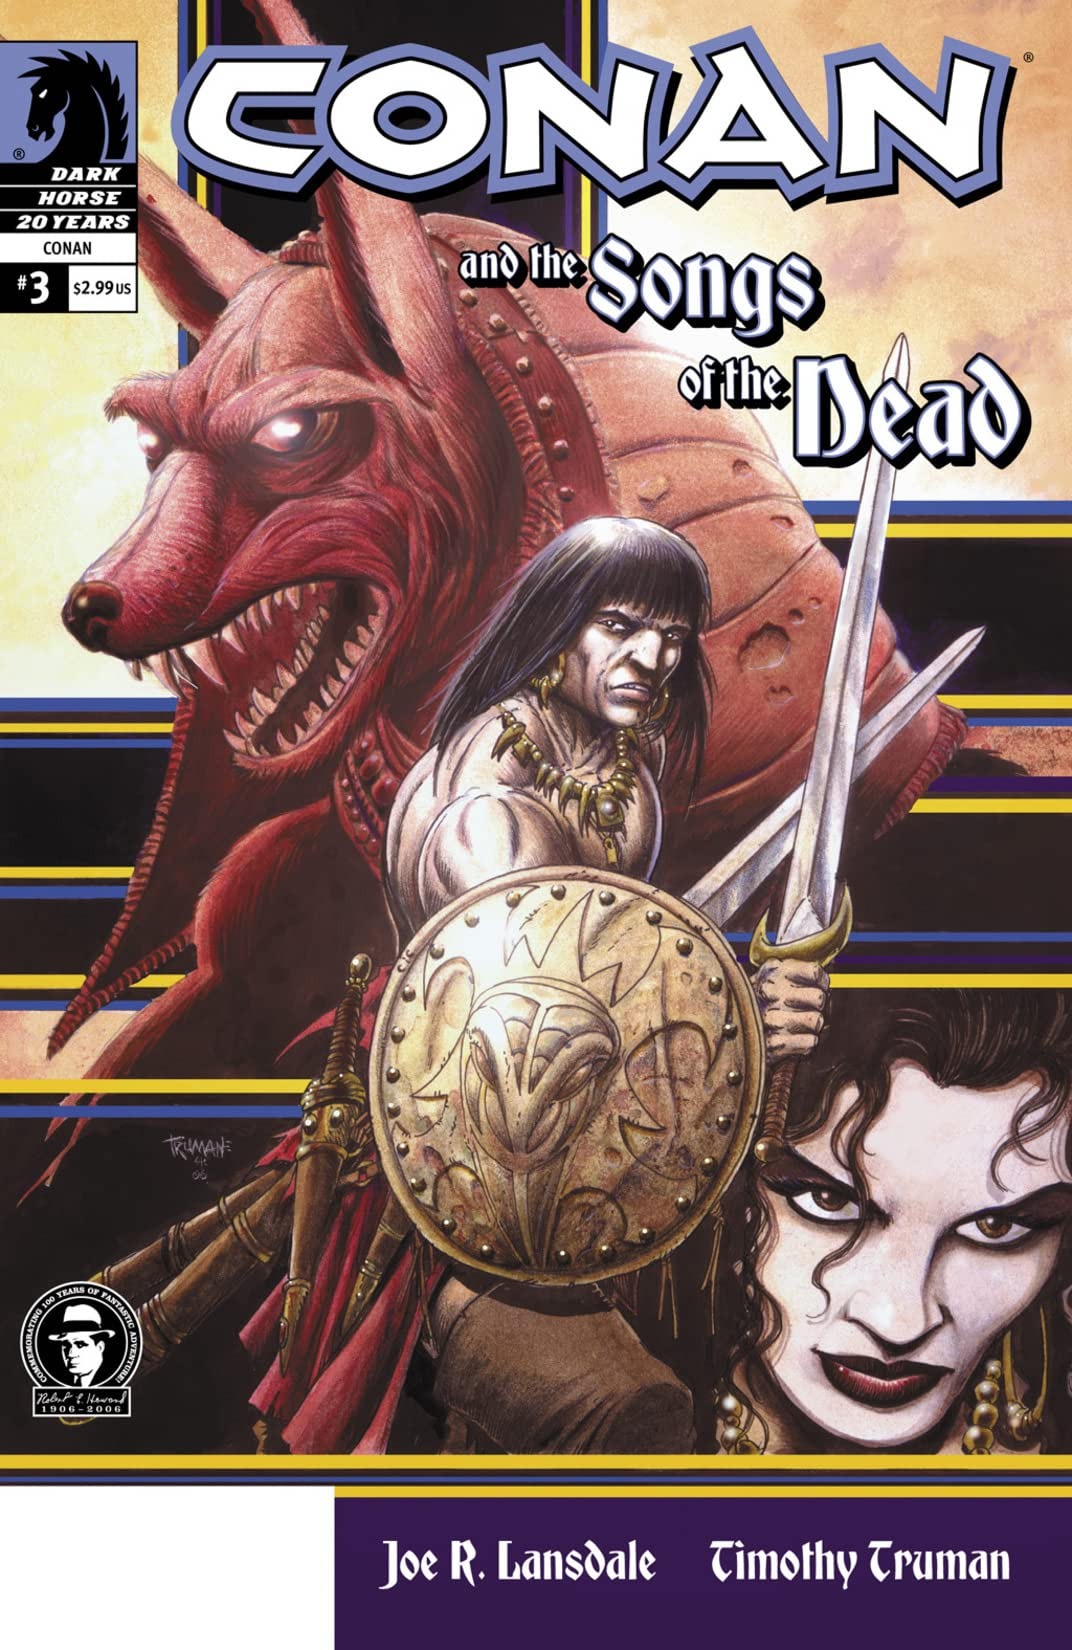 Conan and the Songs of the Dead #3